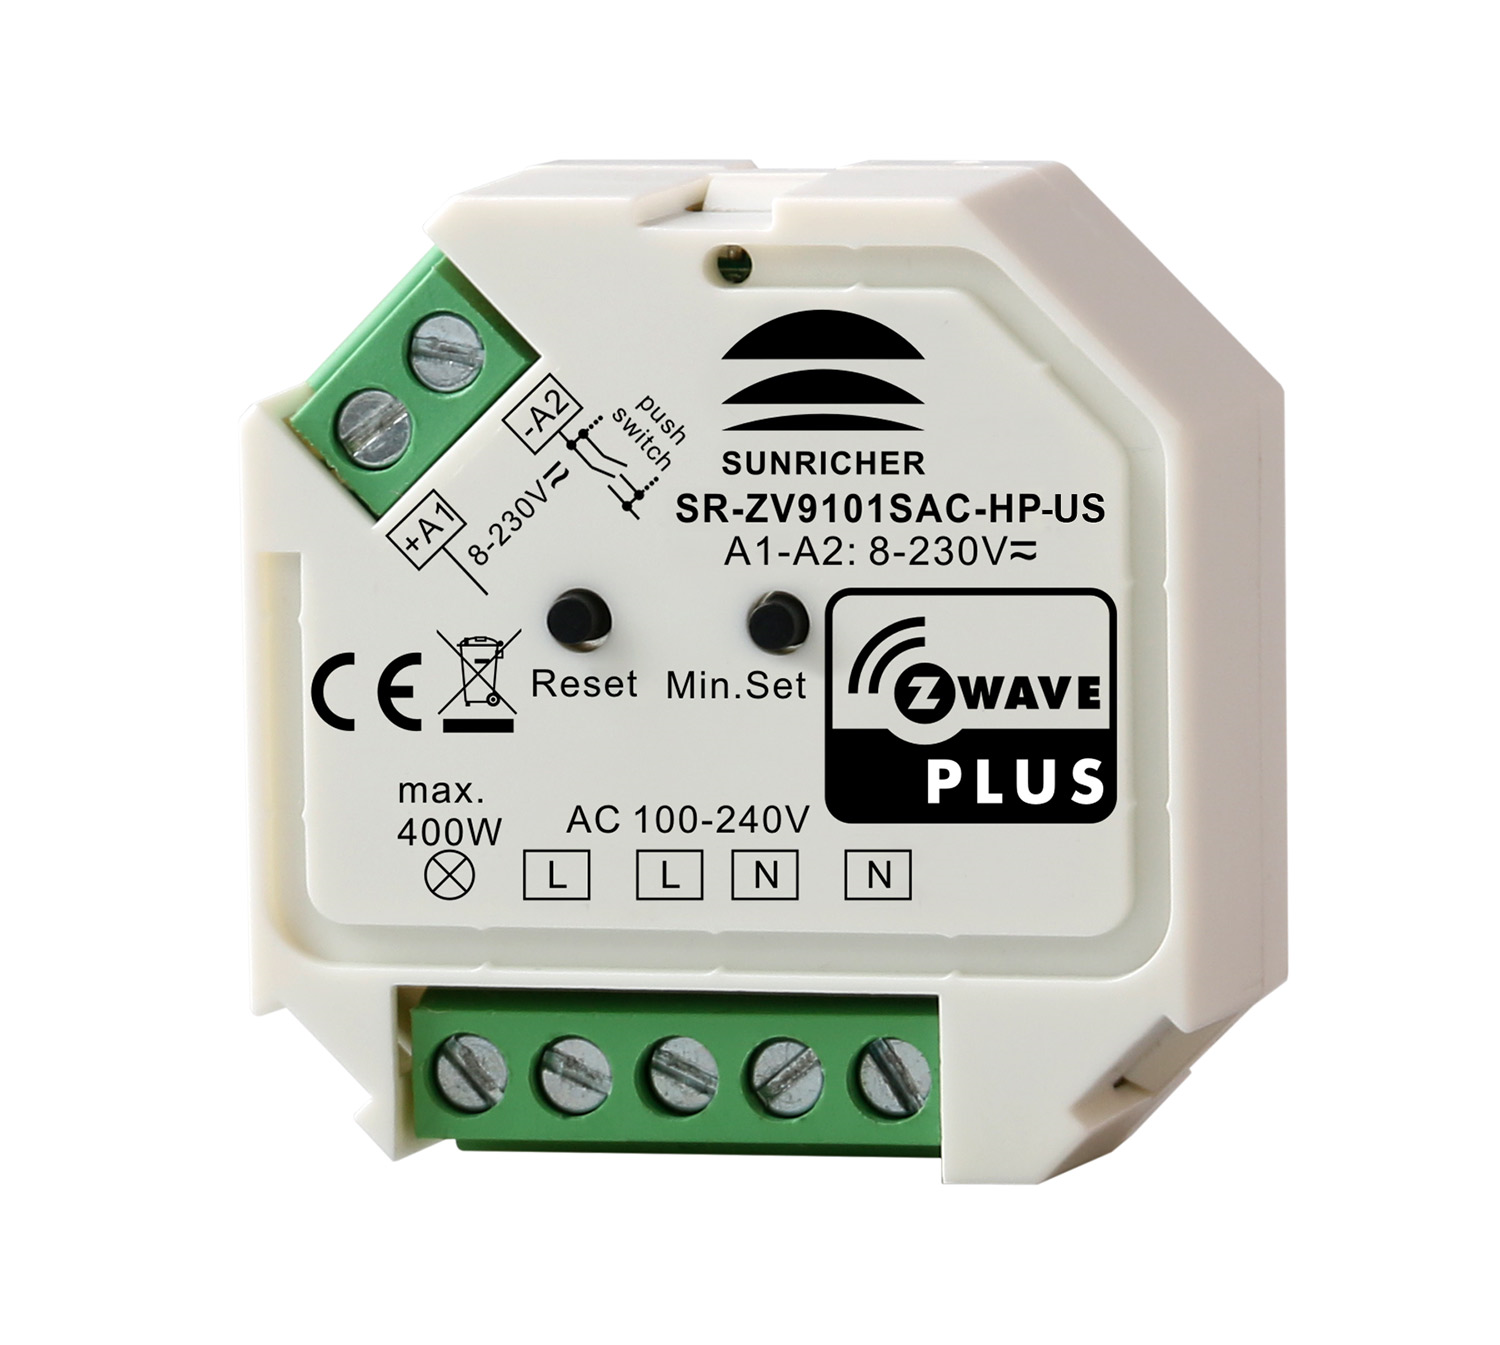 Z Wave Product Catalog Us Canada Mexico Dimming Lighting Cooper Wiring Devices Inc Image